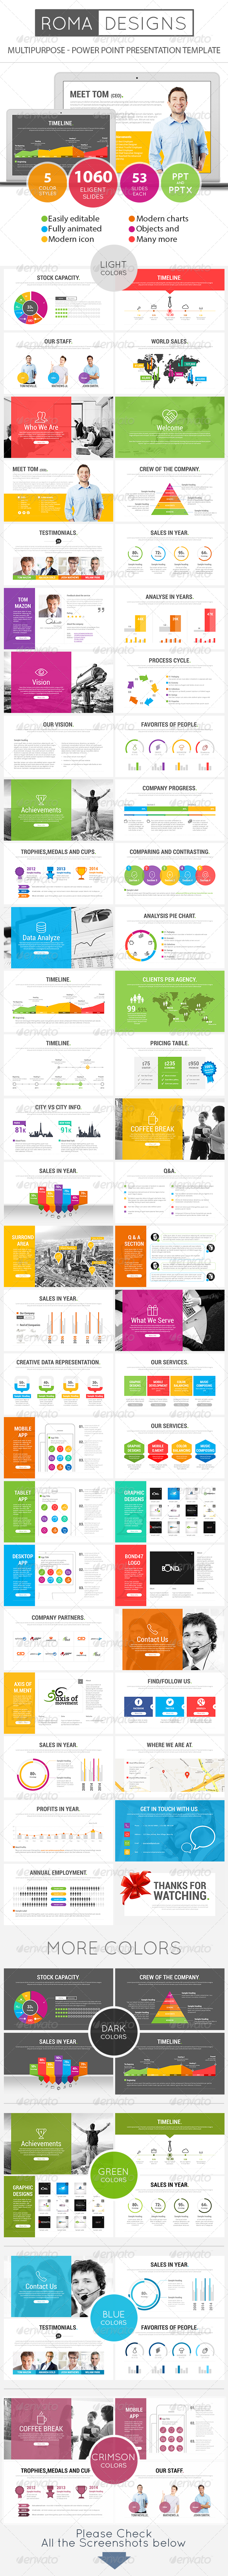 Roma Power Point Presentation Template